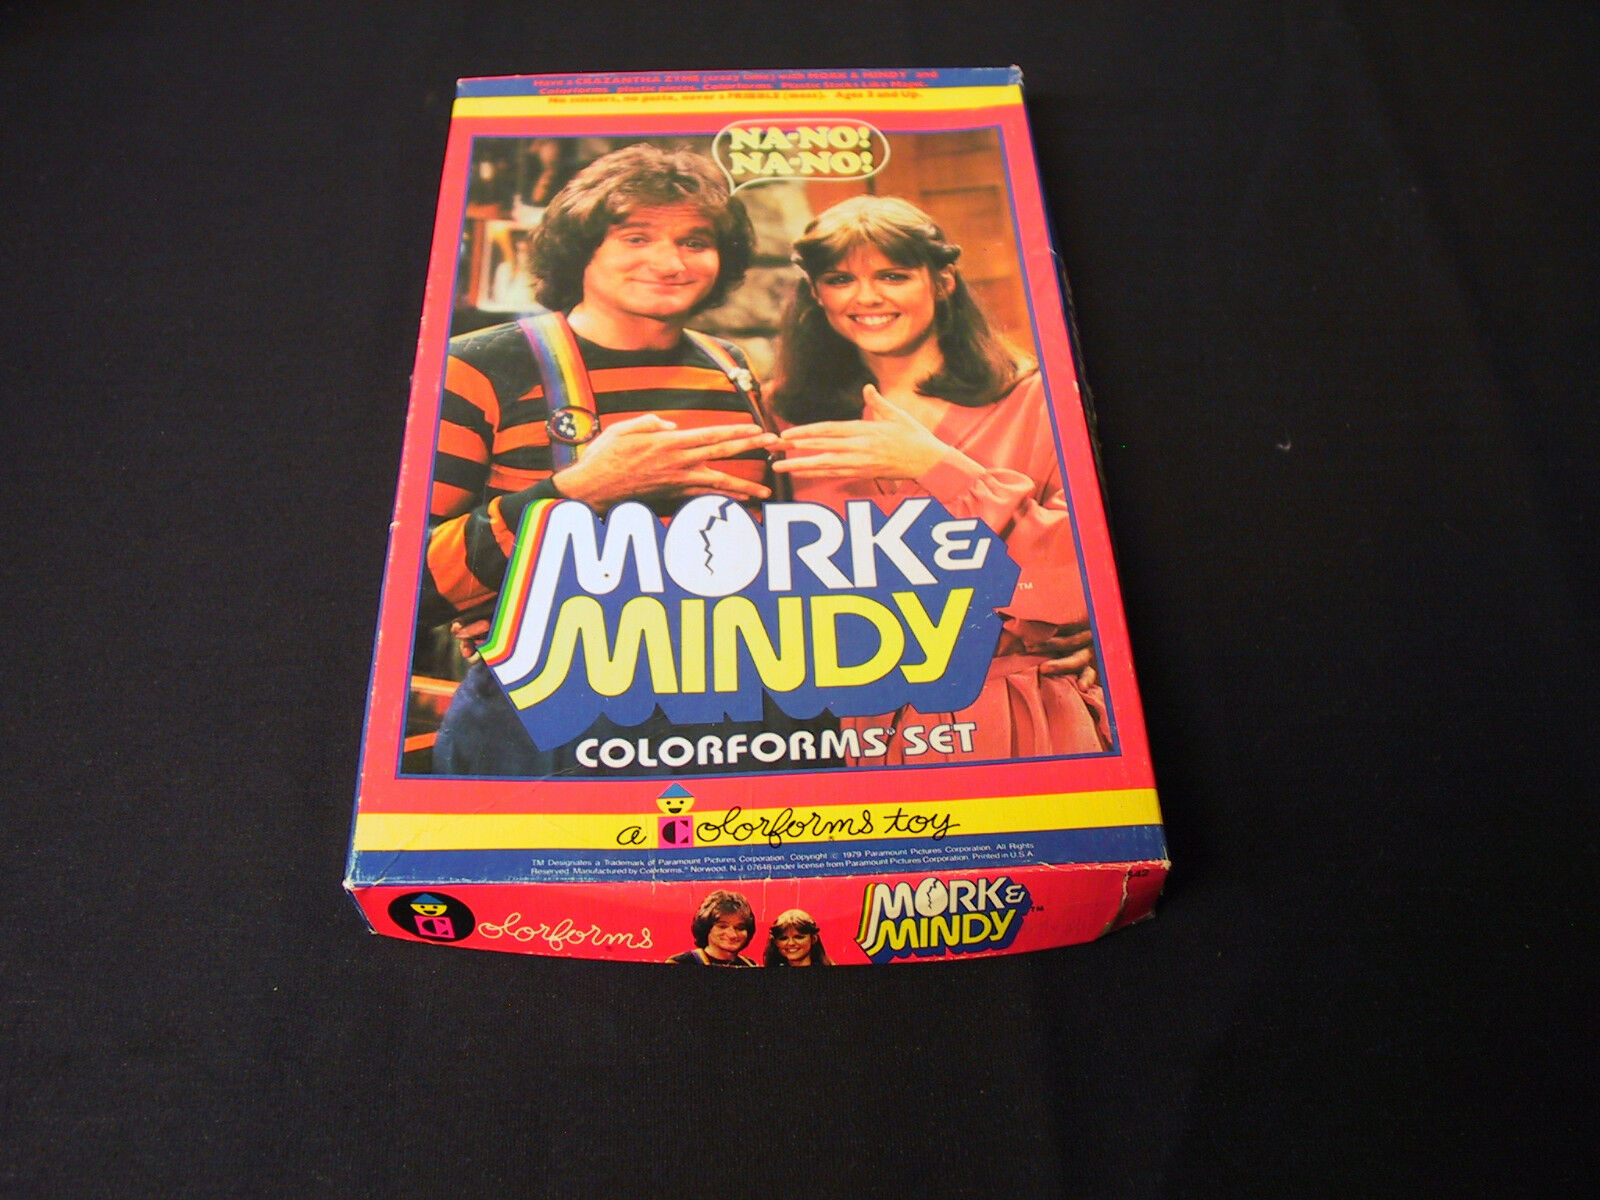 MORK AND MINDY TV SHOW NANO COLORFORMS VINTAGE 1979 NOT COMPLETE SET BOX NO BOOK